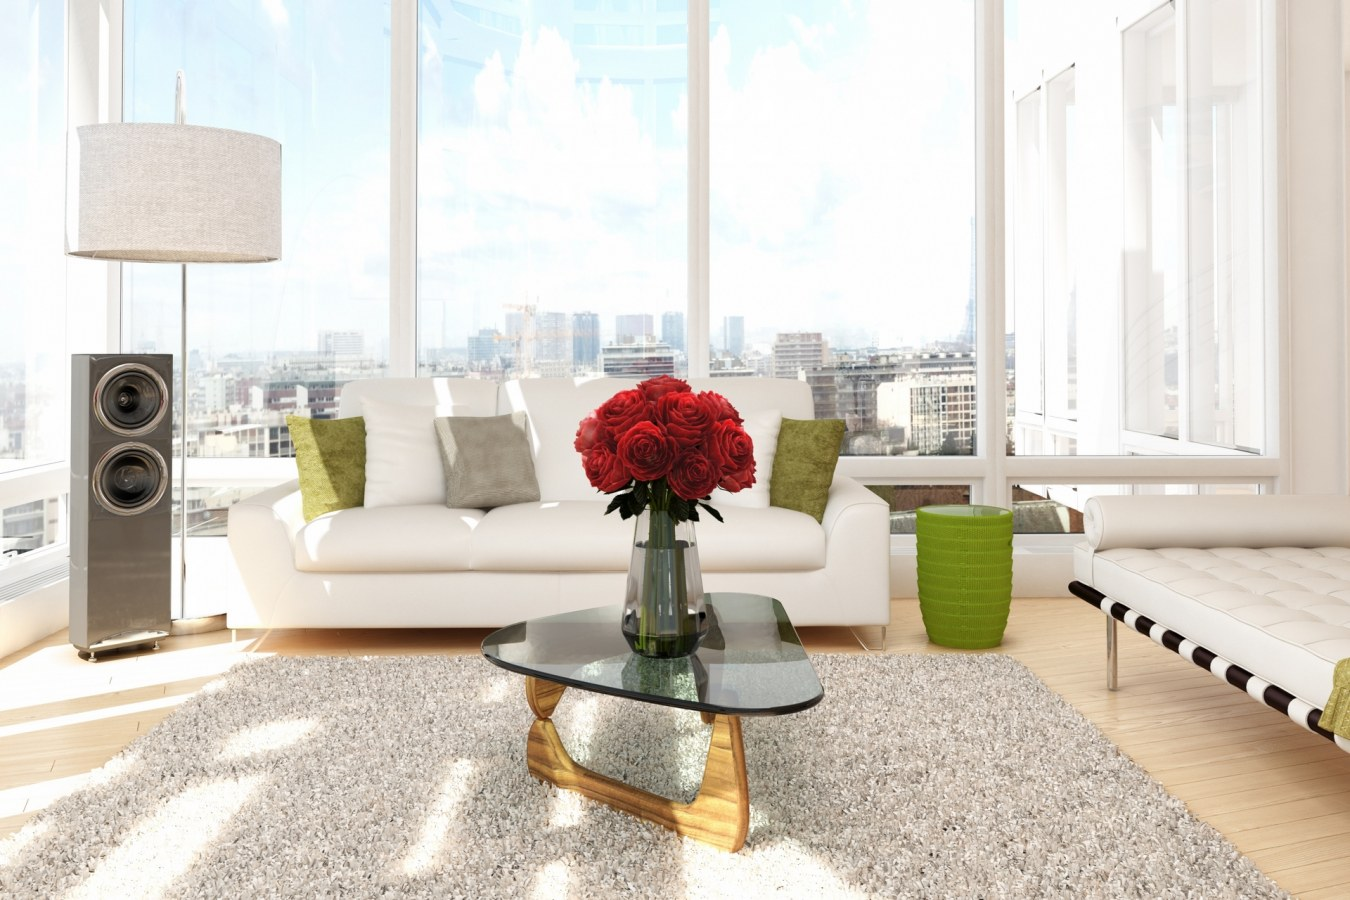 Buy a furnished apartment through Bayut.com and place it on short term rent